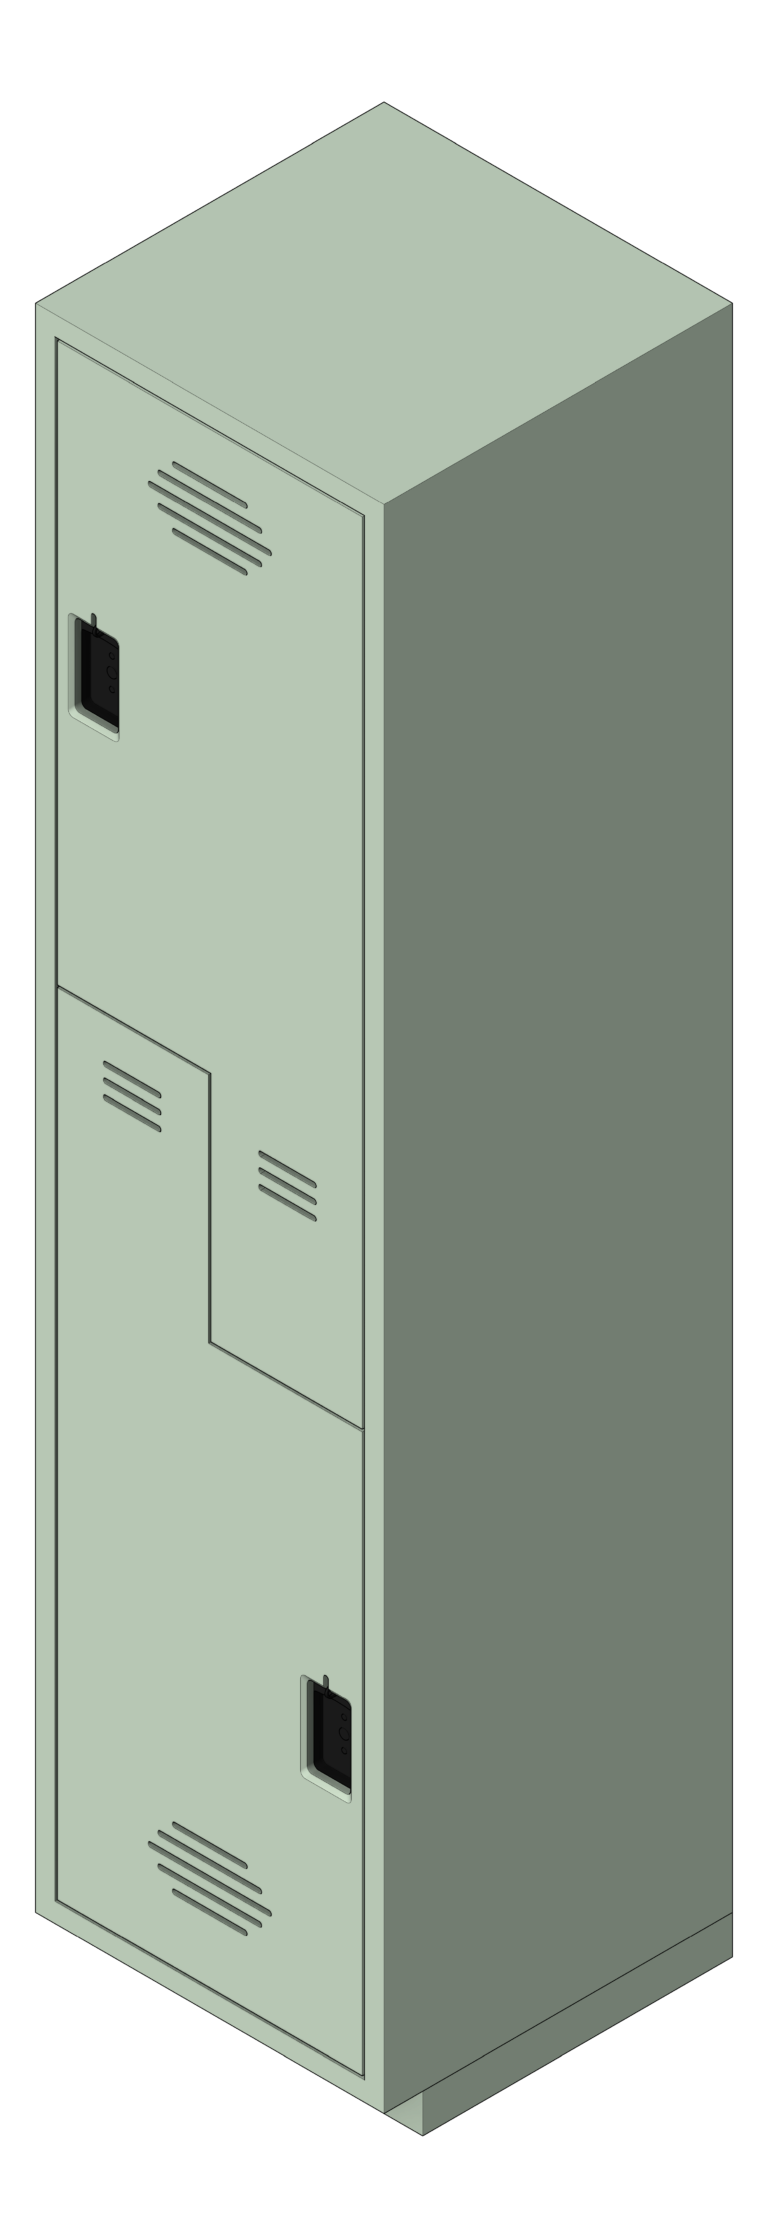 Locker_Plastic_ASI_Traditional_2PersonZ_3D Shaded